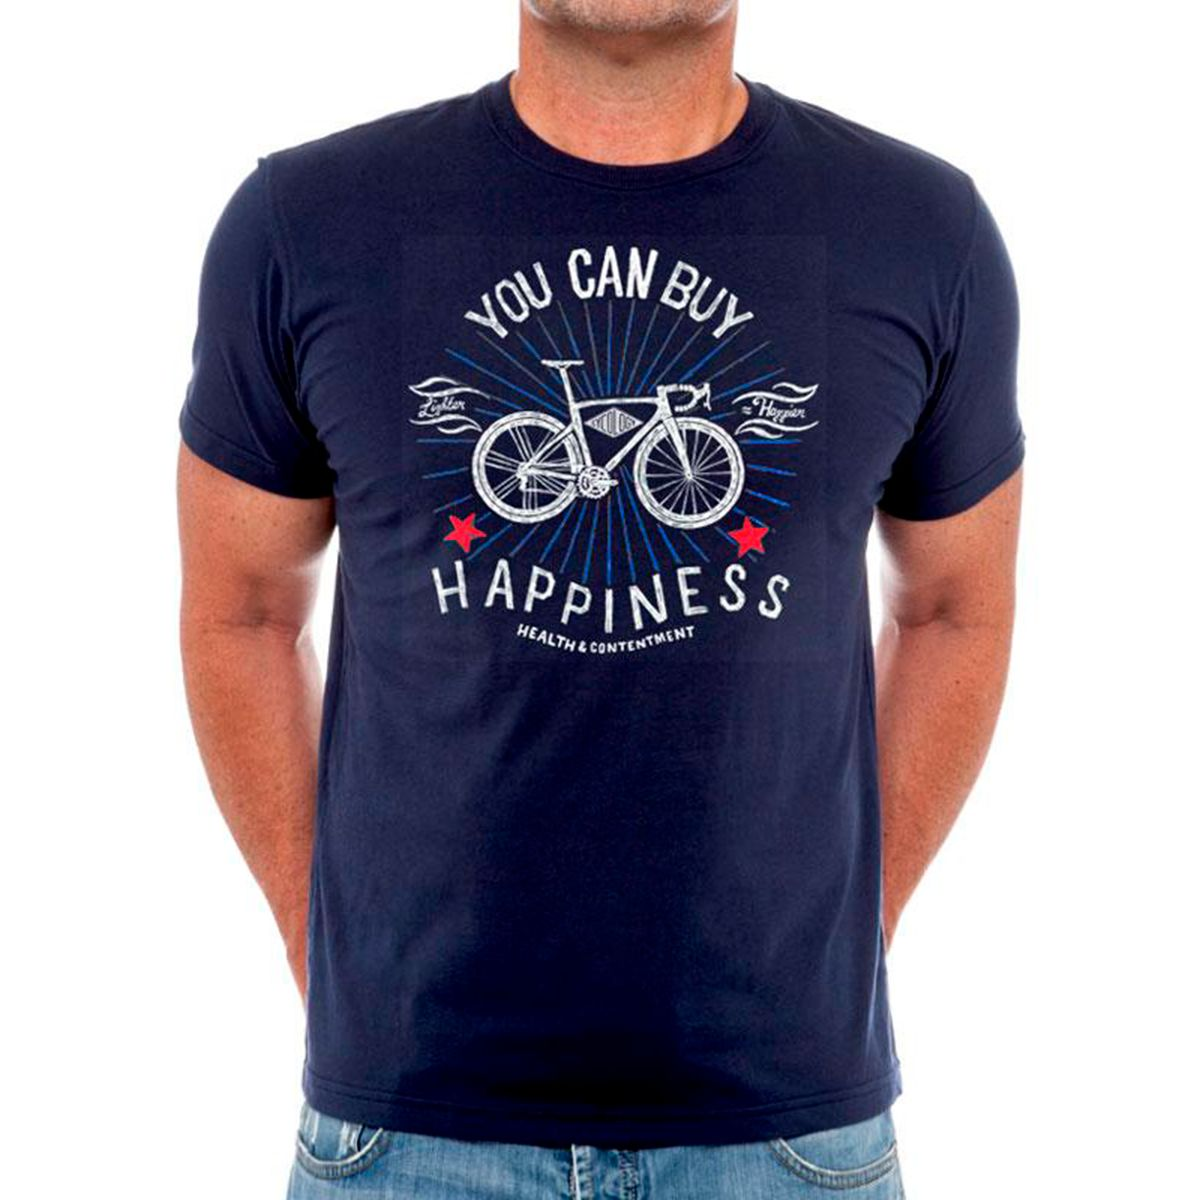 YOU CAN BUY HAPPINESS t-shirt